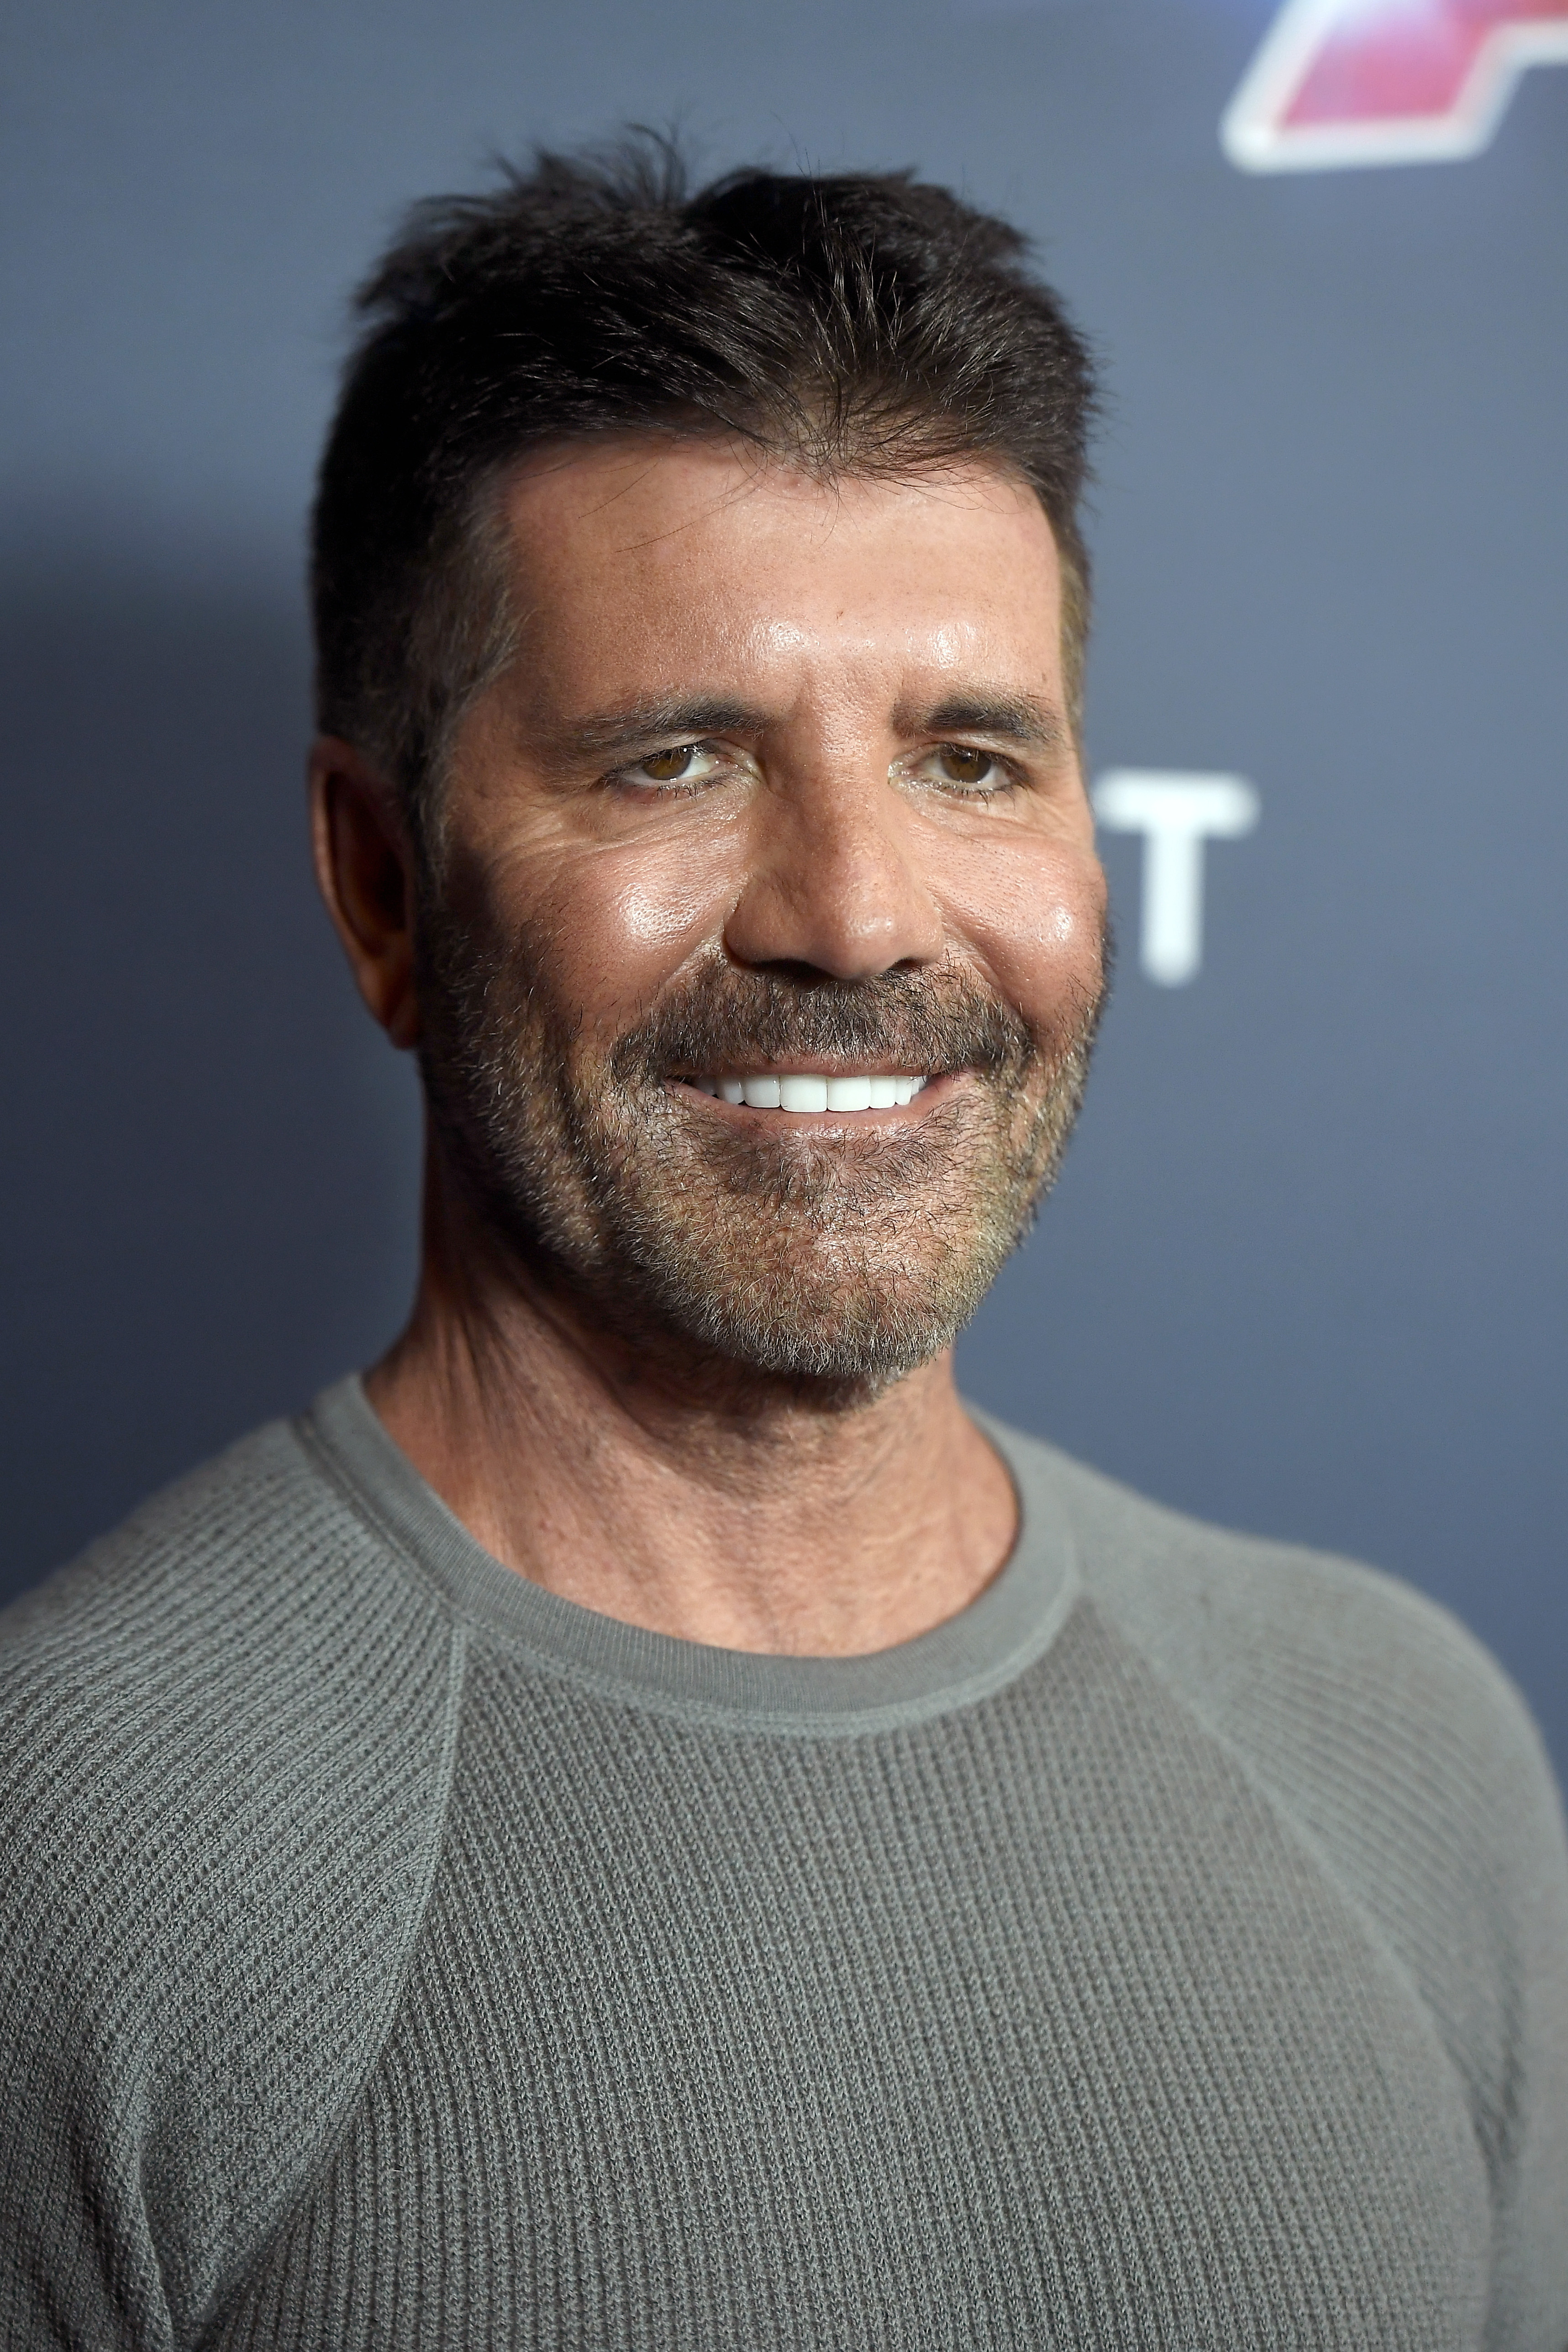 Everyone Wants To Know What S Going On With Simon Cowell